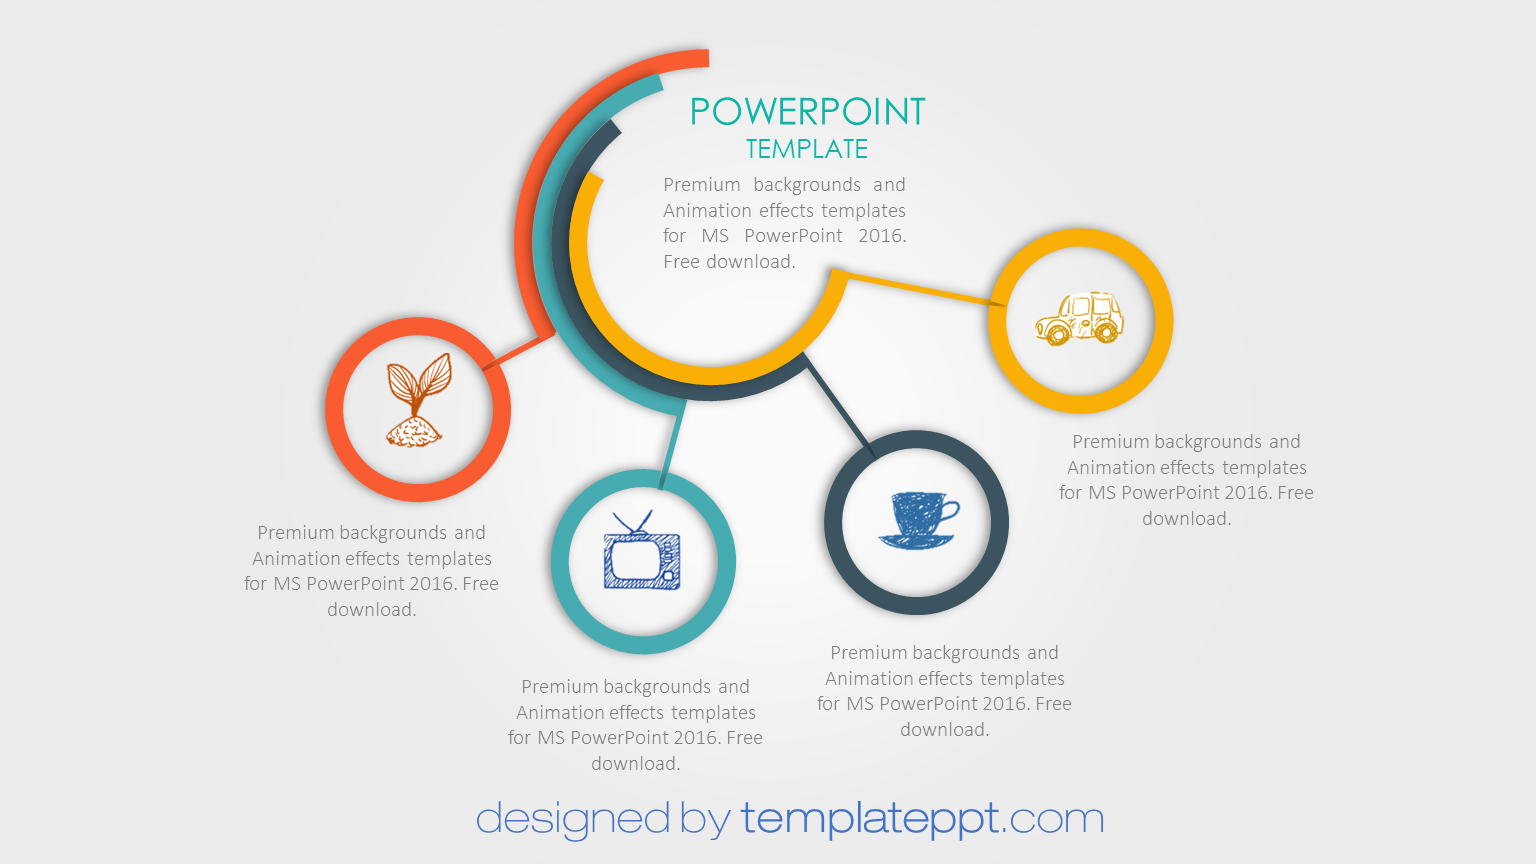 Professional PowerPoint templates free download 2016 | Design2 ...